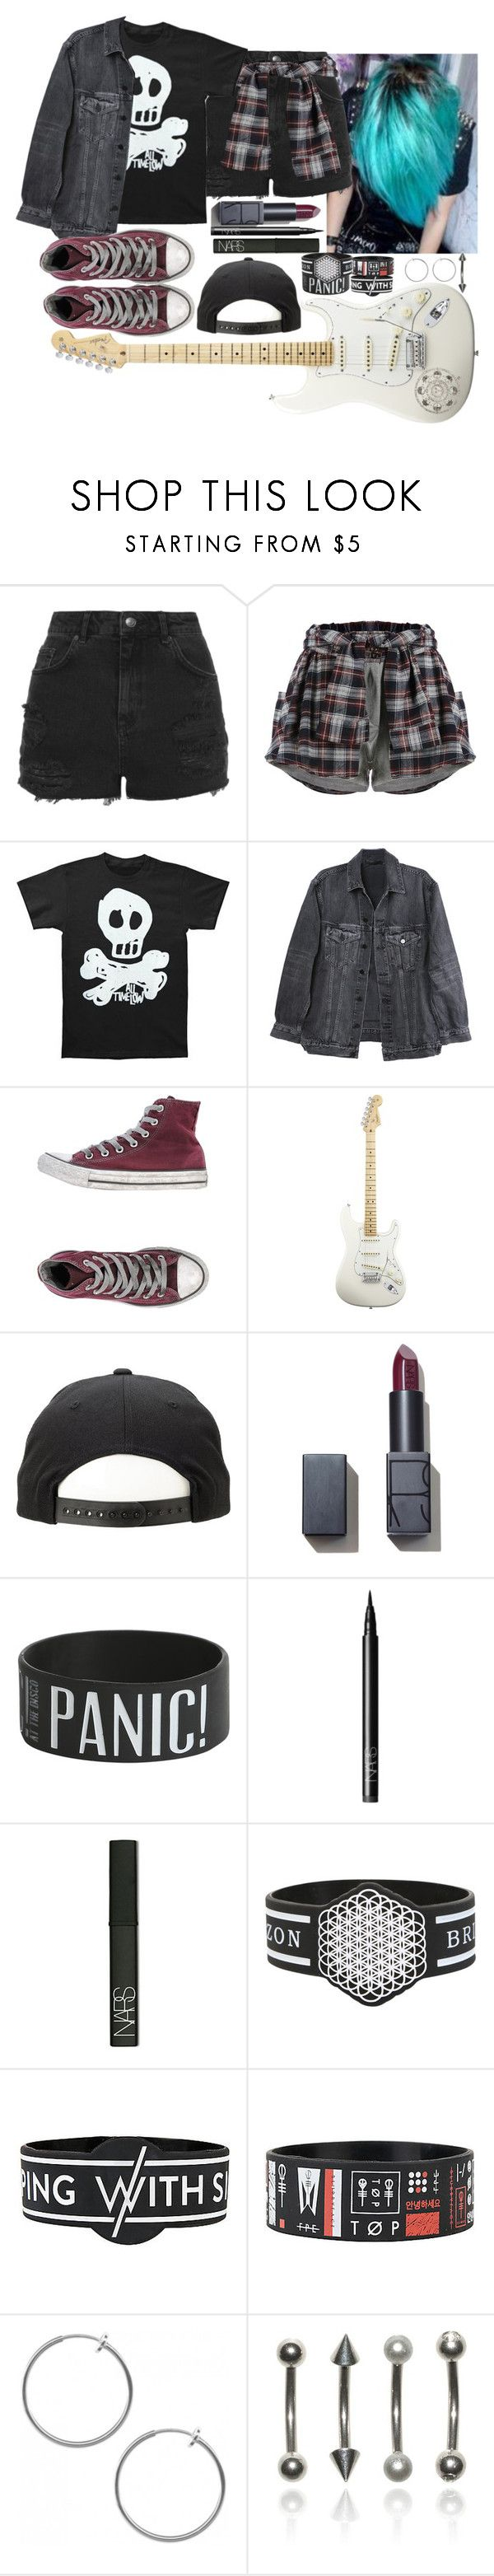 """[Concert in Germany w/ the girls]"" by purplemonkeys005 on Polyvore featuring Anastasia Beverly Hills, Topshop, Y/Project, Converse, American Standard, NARS Cosmetics and mandy"